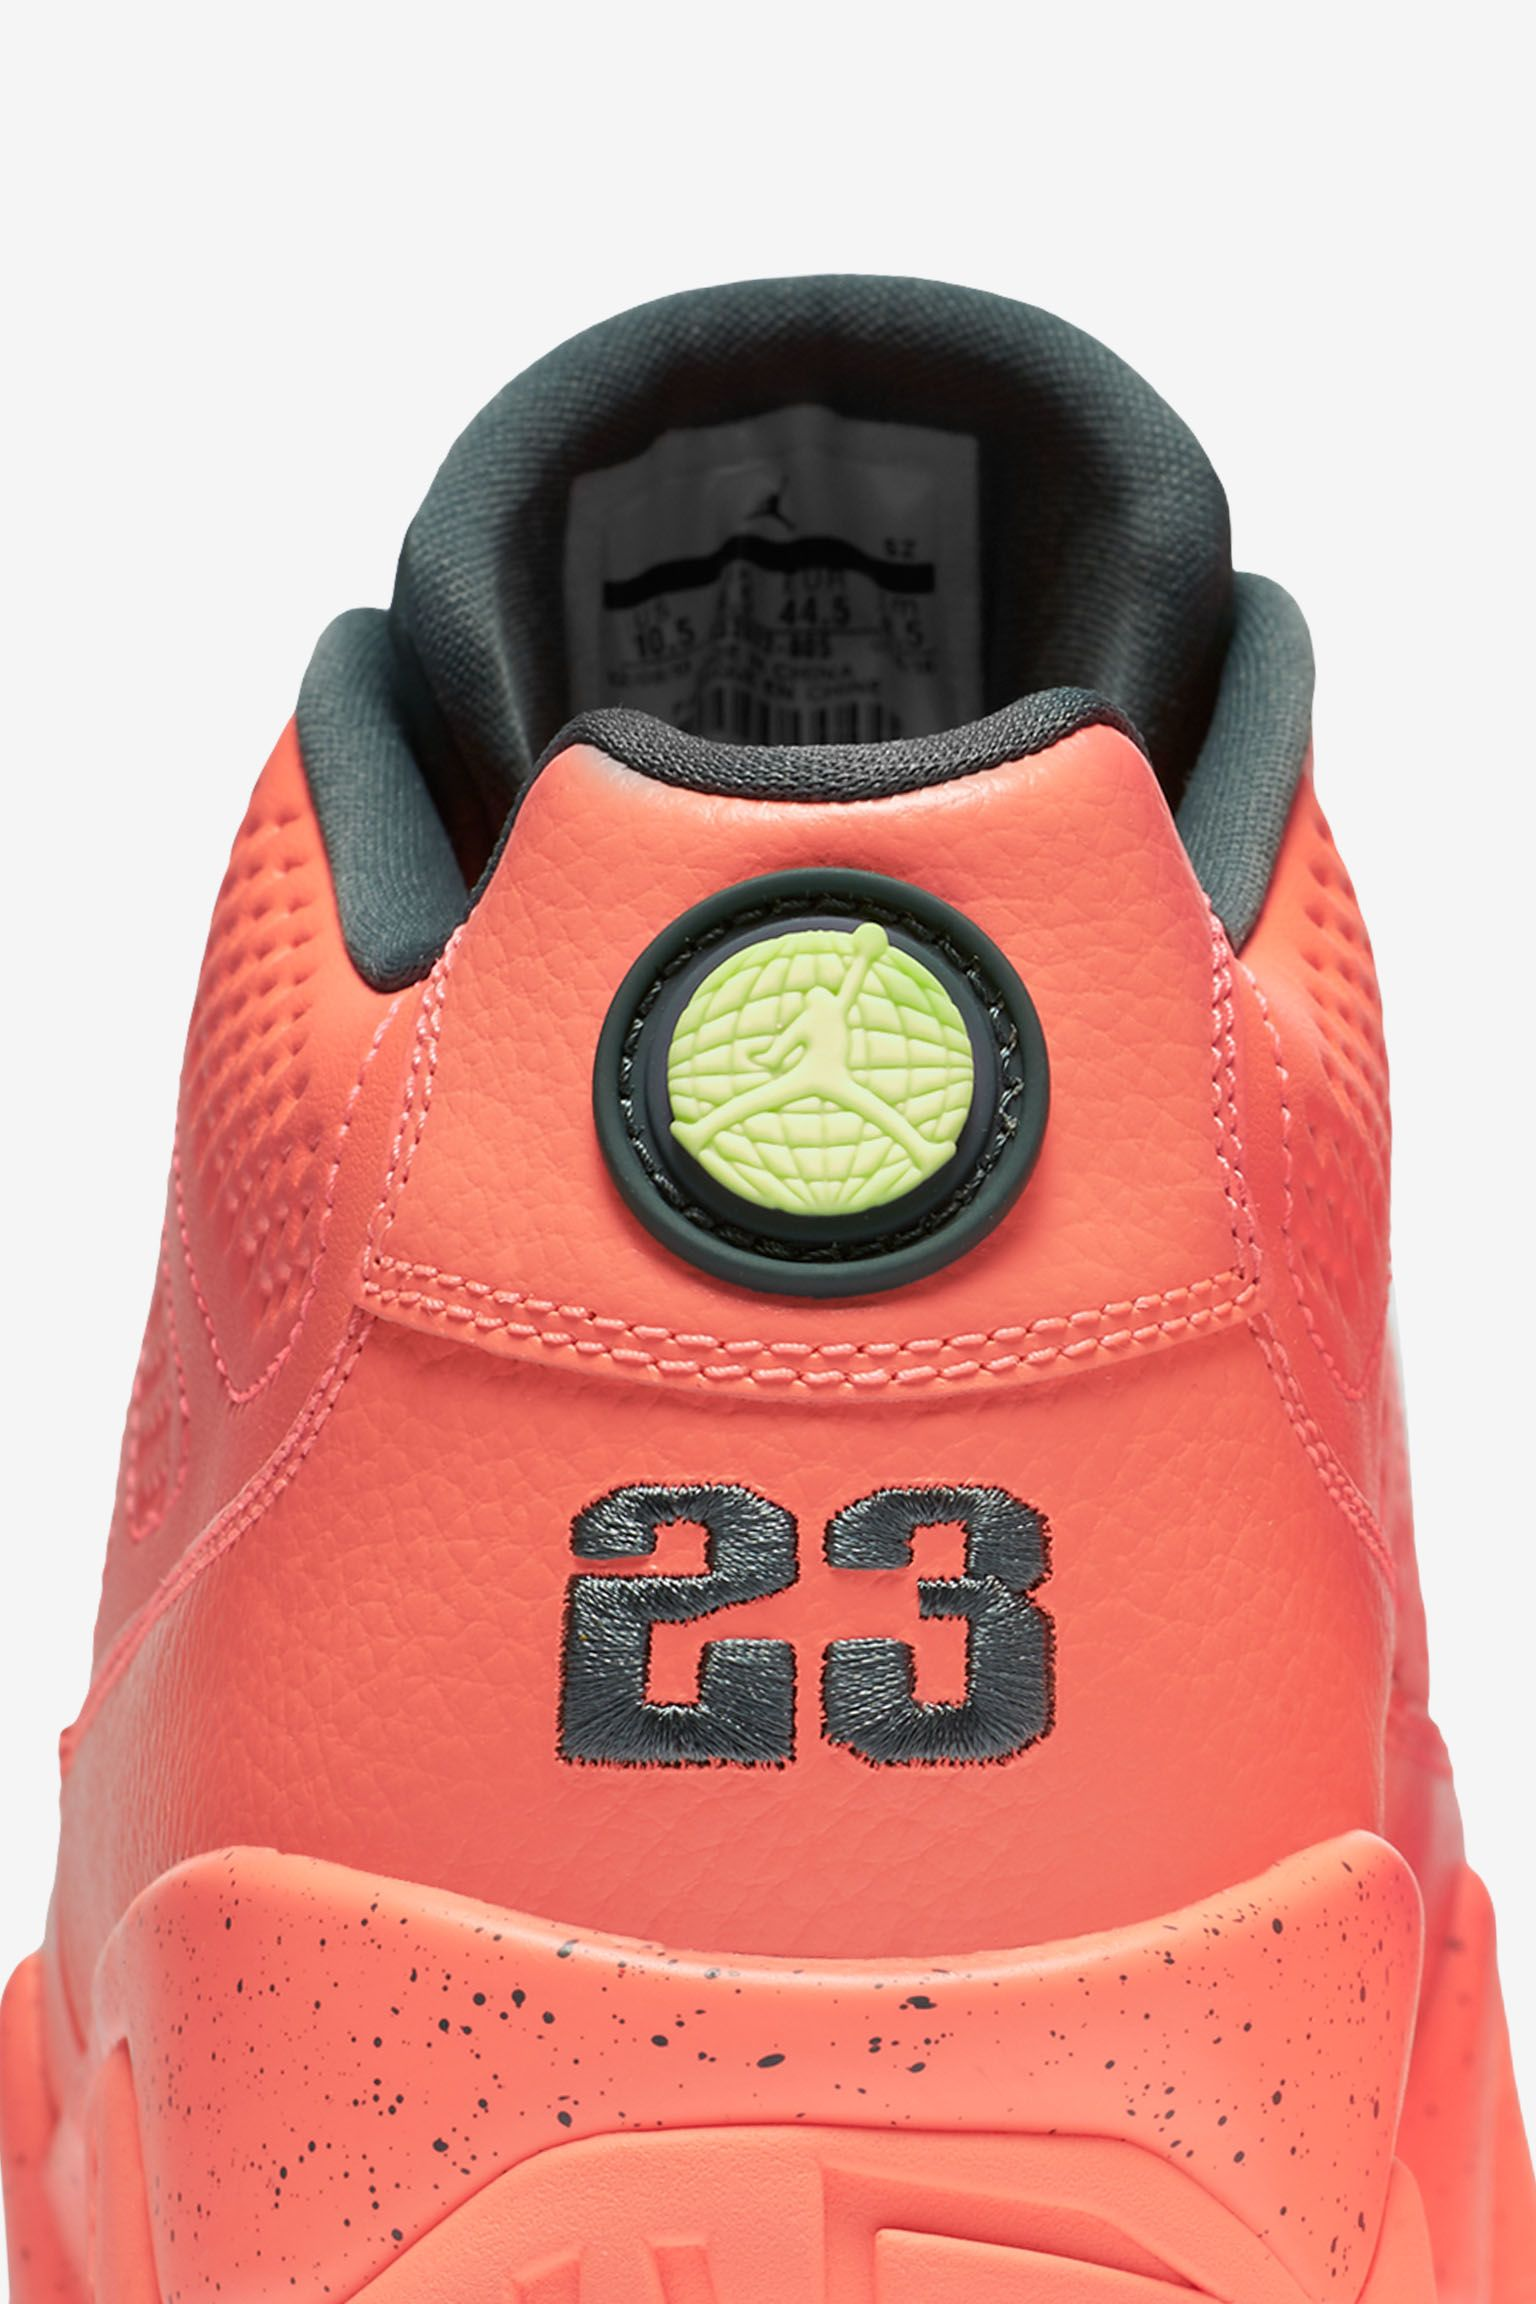 Air Jordan 9 Retro Low 'Bright Mango' Release Date